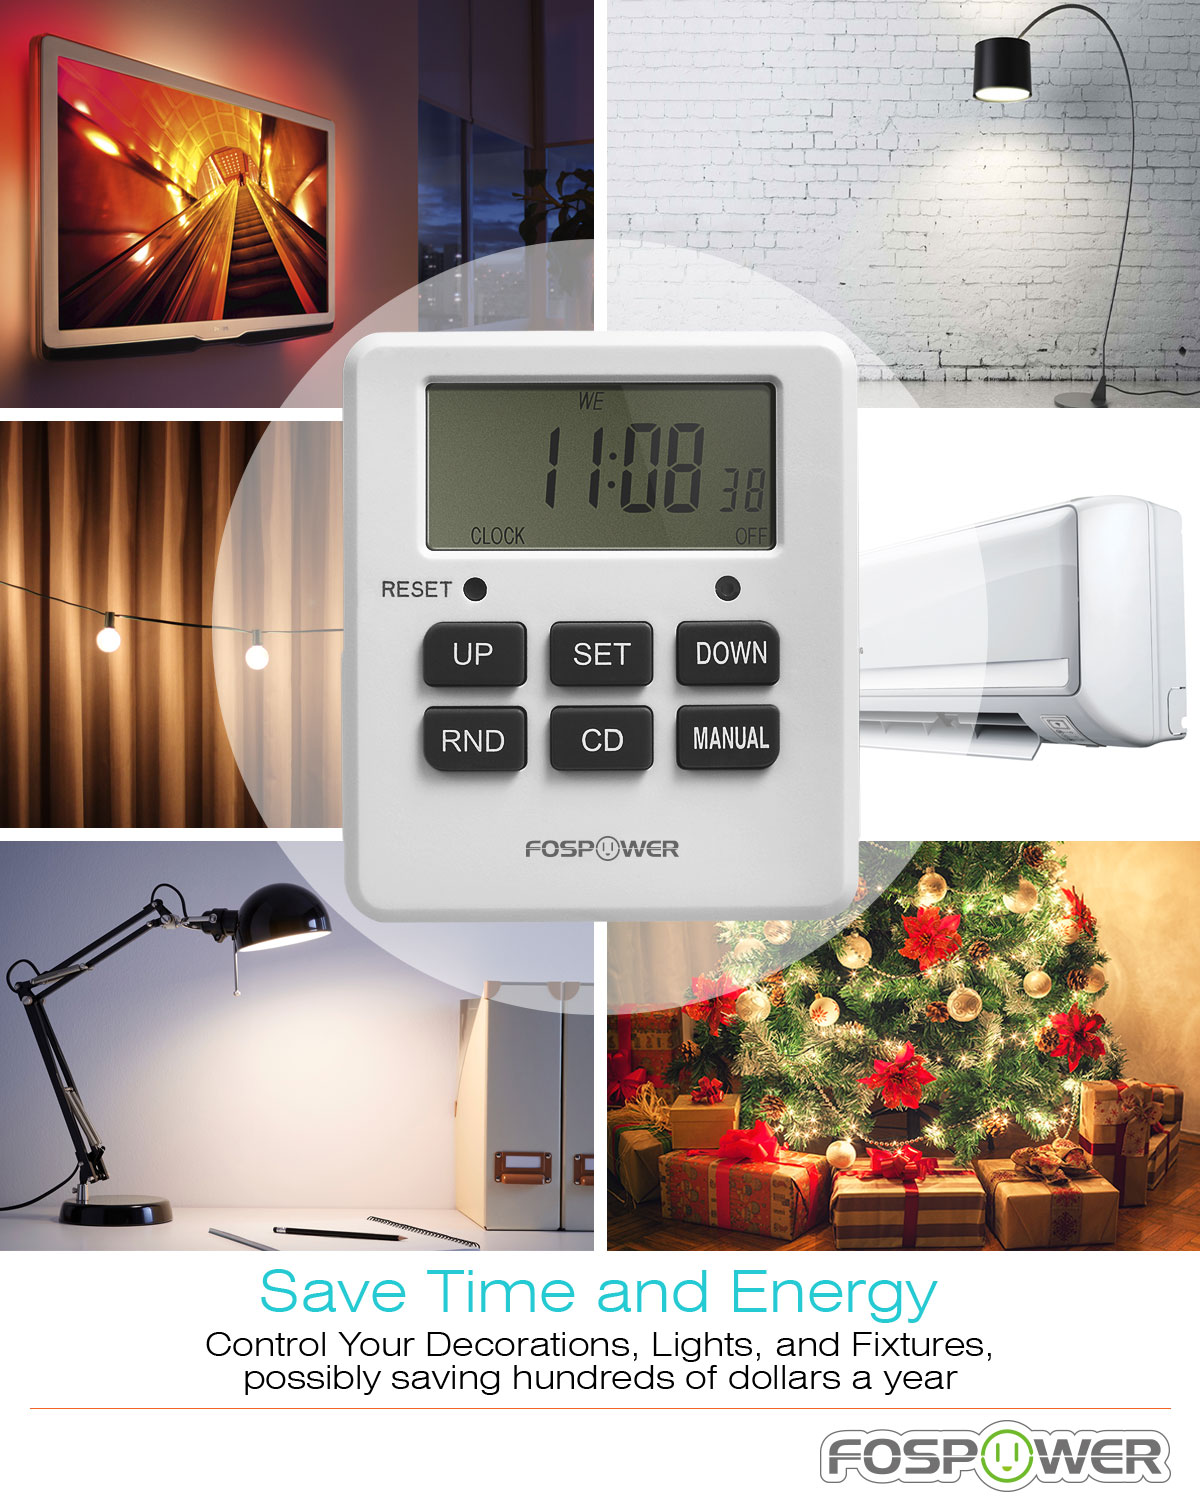 Selective Timer Alarm Sf Planet Fospower 7 Day Digital Outlet With Two Us Socket Outlets Etl Listed 125v